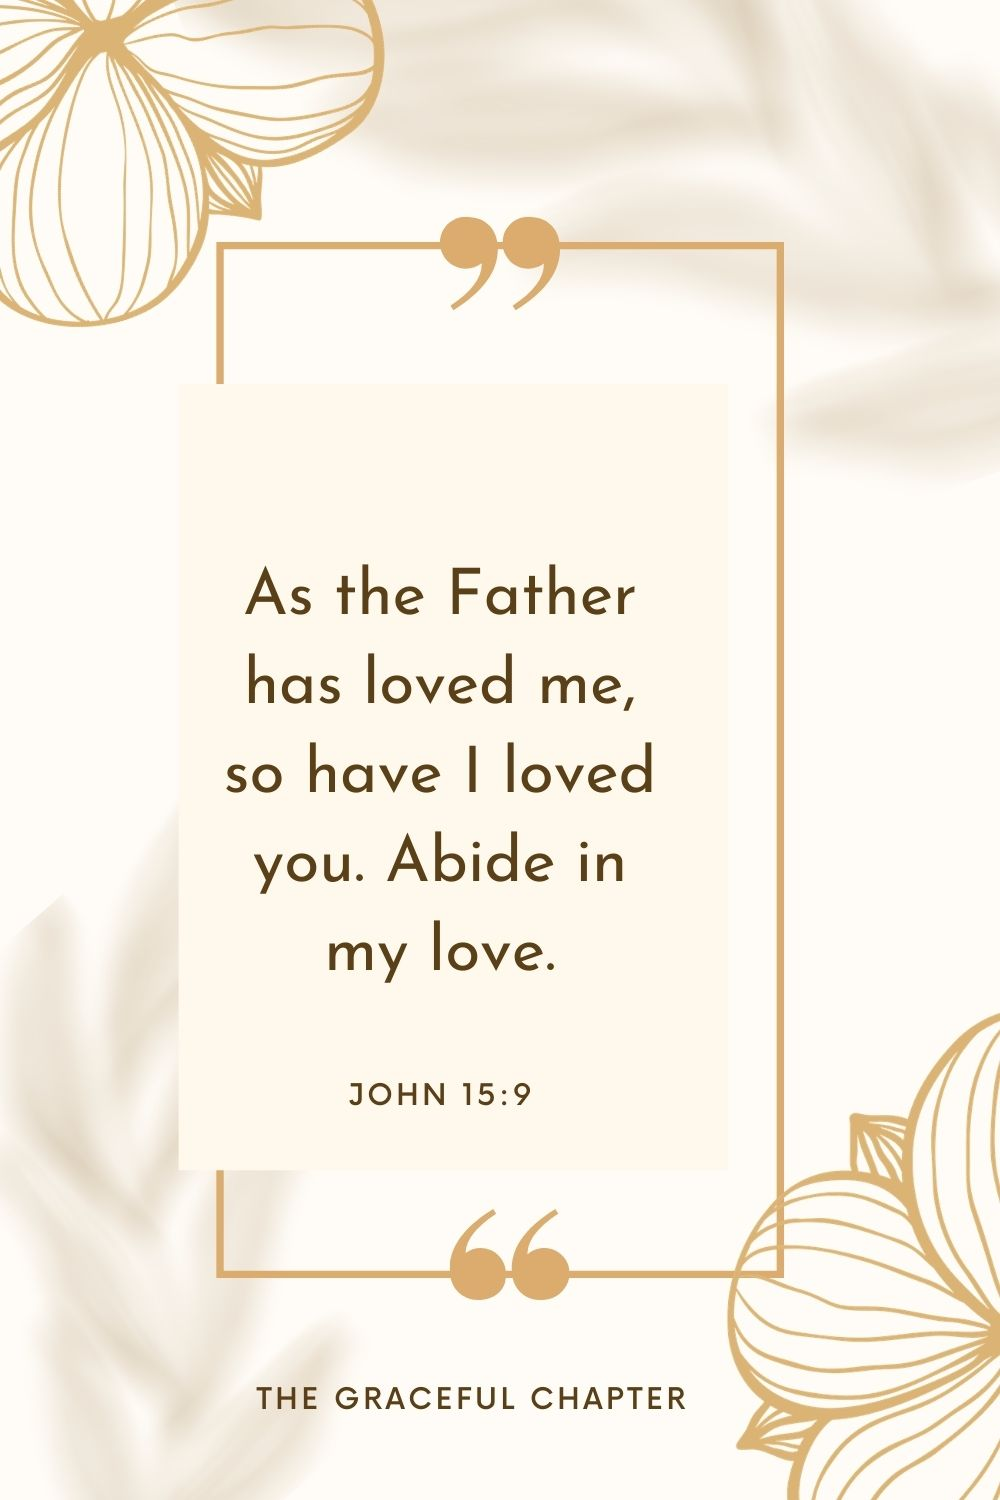 As the Father has loved me, so have I loved you. Abide in my love. John 15:9